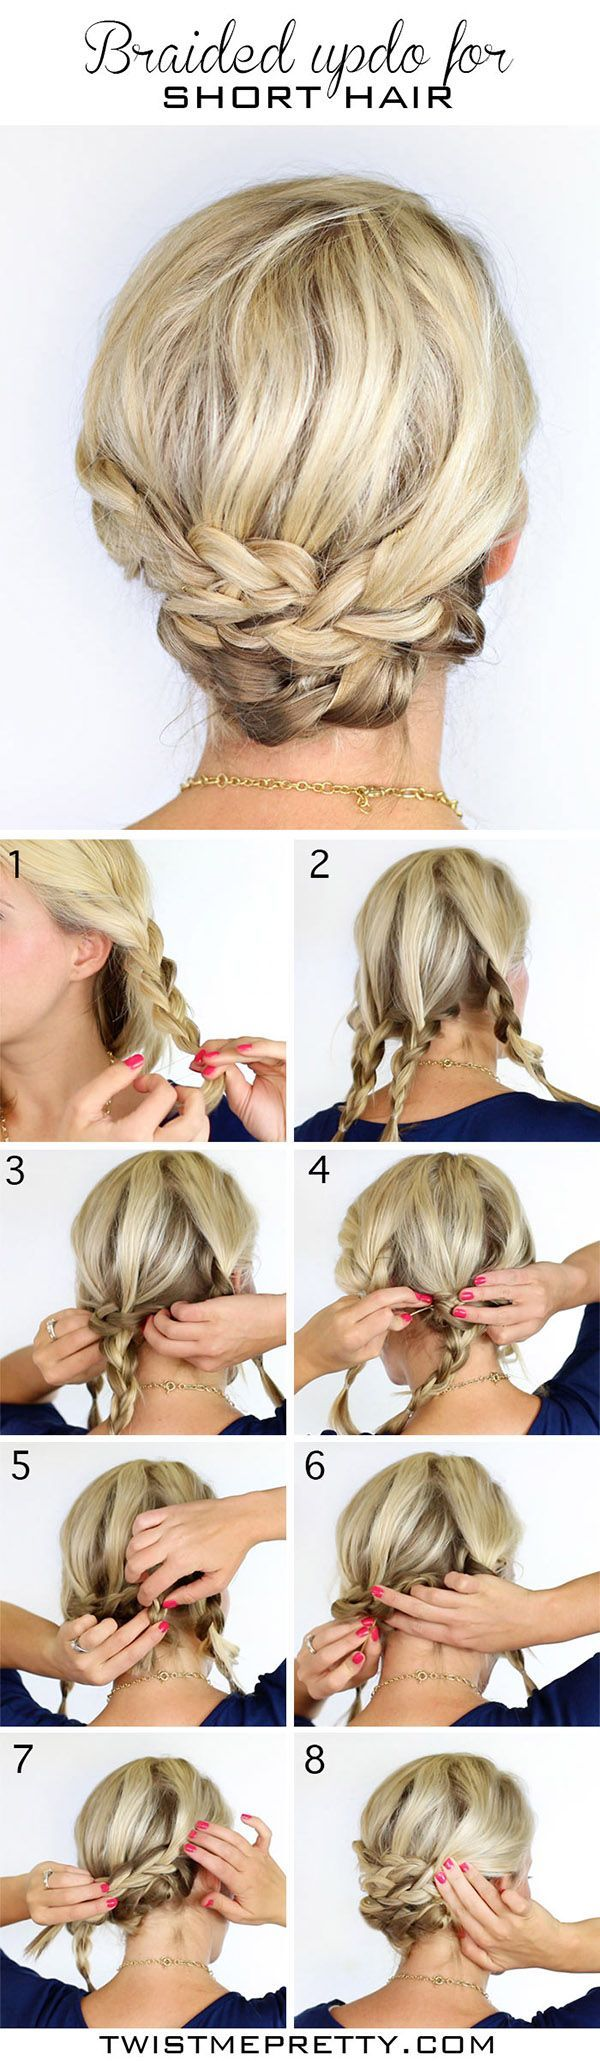 braided updo for short hair - Eclaircissant Cheveux Colors